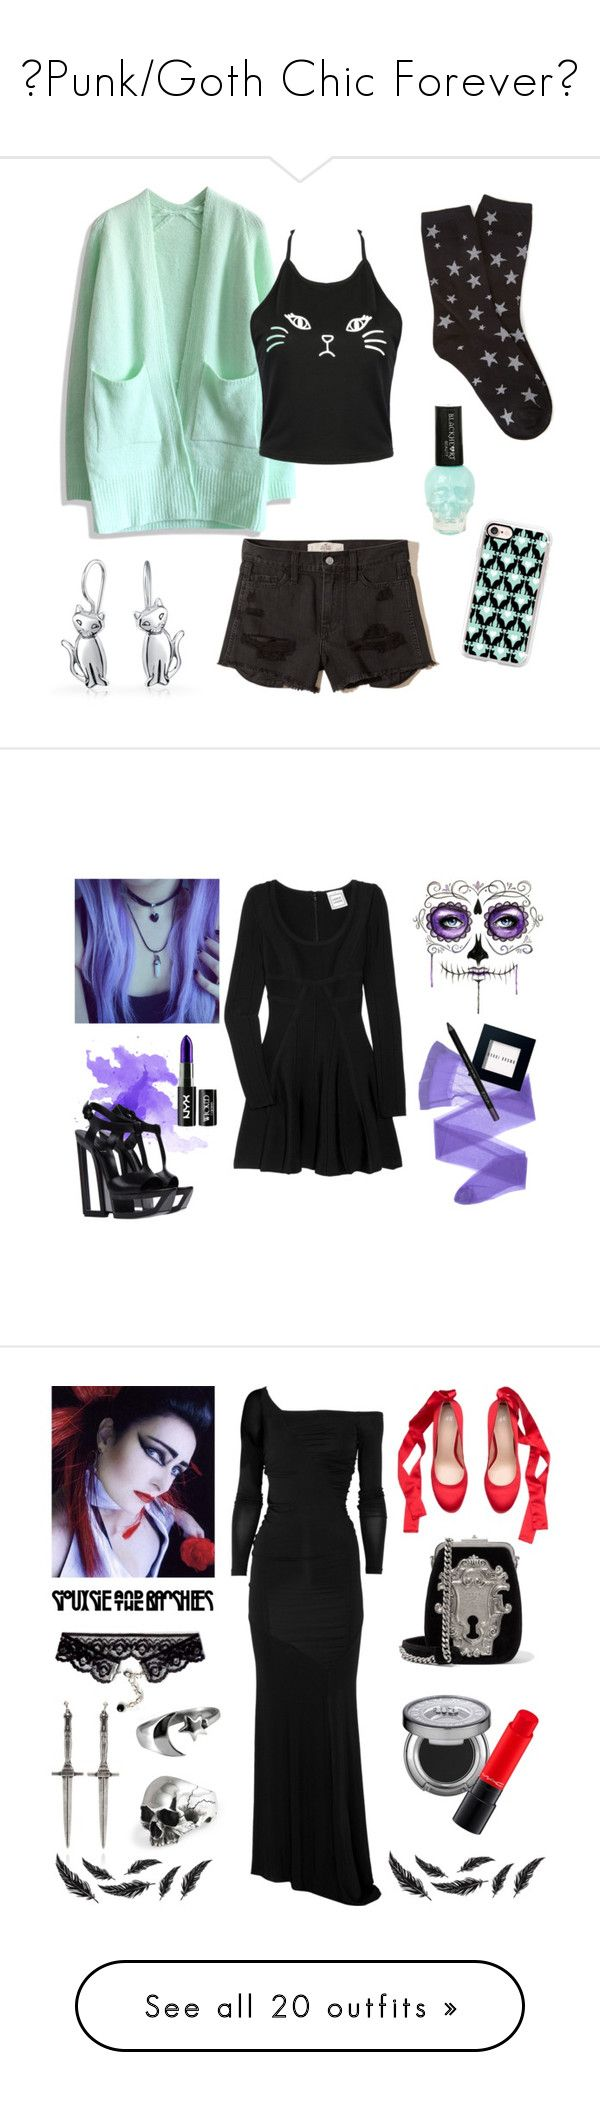 """""""🖤Punk/Goth Chic Forever🖤"""" by cherrycokegrunge ❤ liked on Polyvore featuring Chicwish, Hollister Co., Forever 21, Bling Jewelry, Hot Topic, Casetify, Casadei, Hervé Léger, Wolford and Bobbi Brown Cosmetics"""